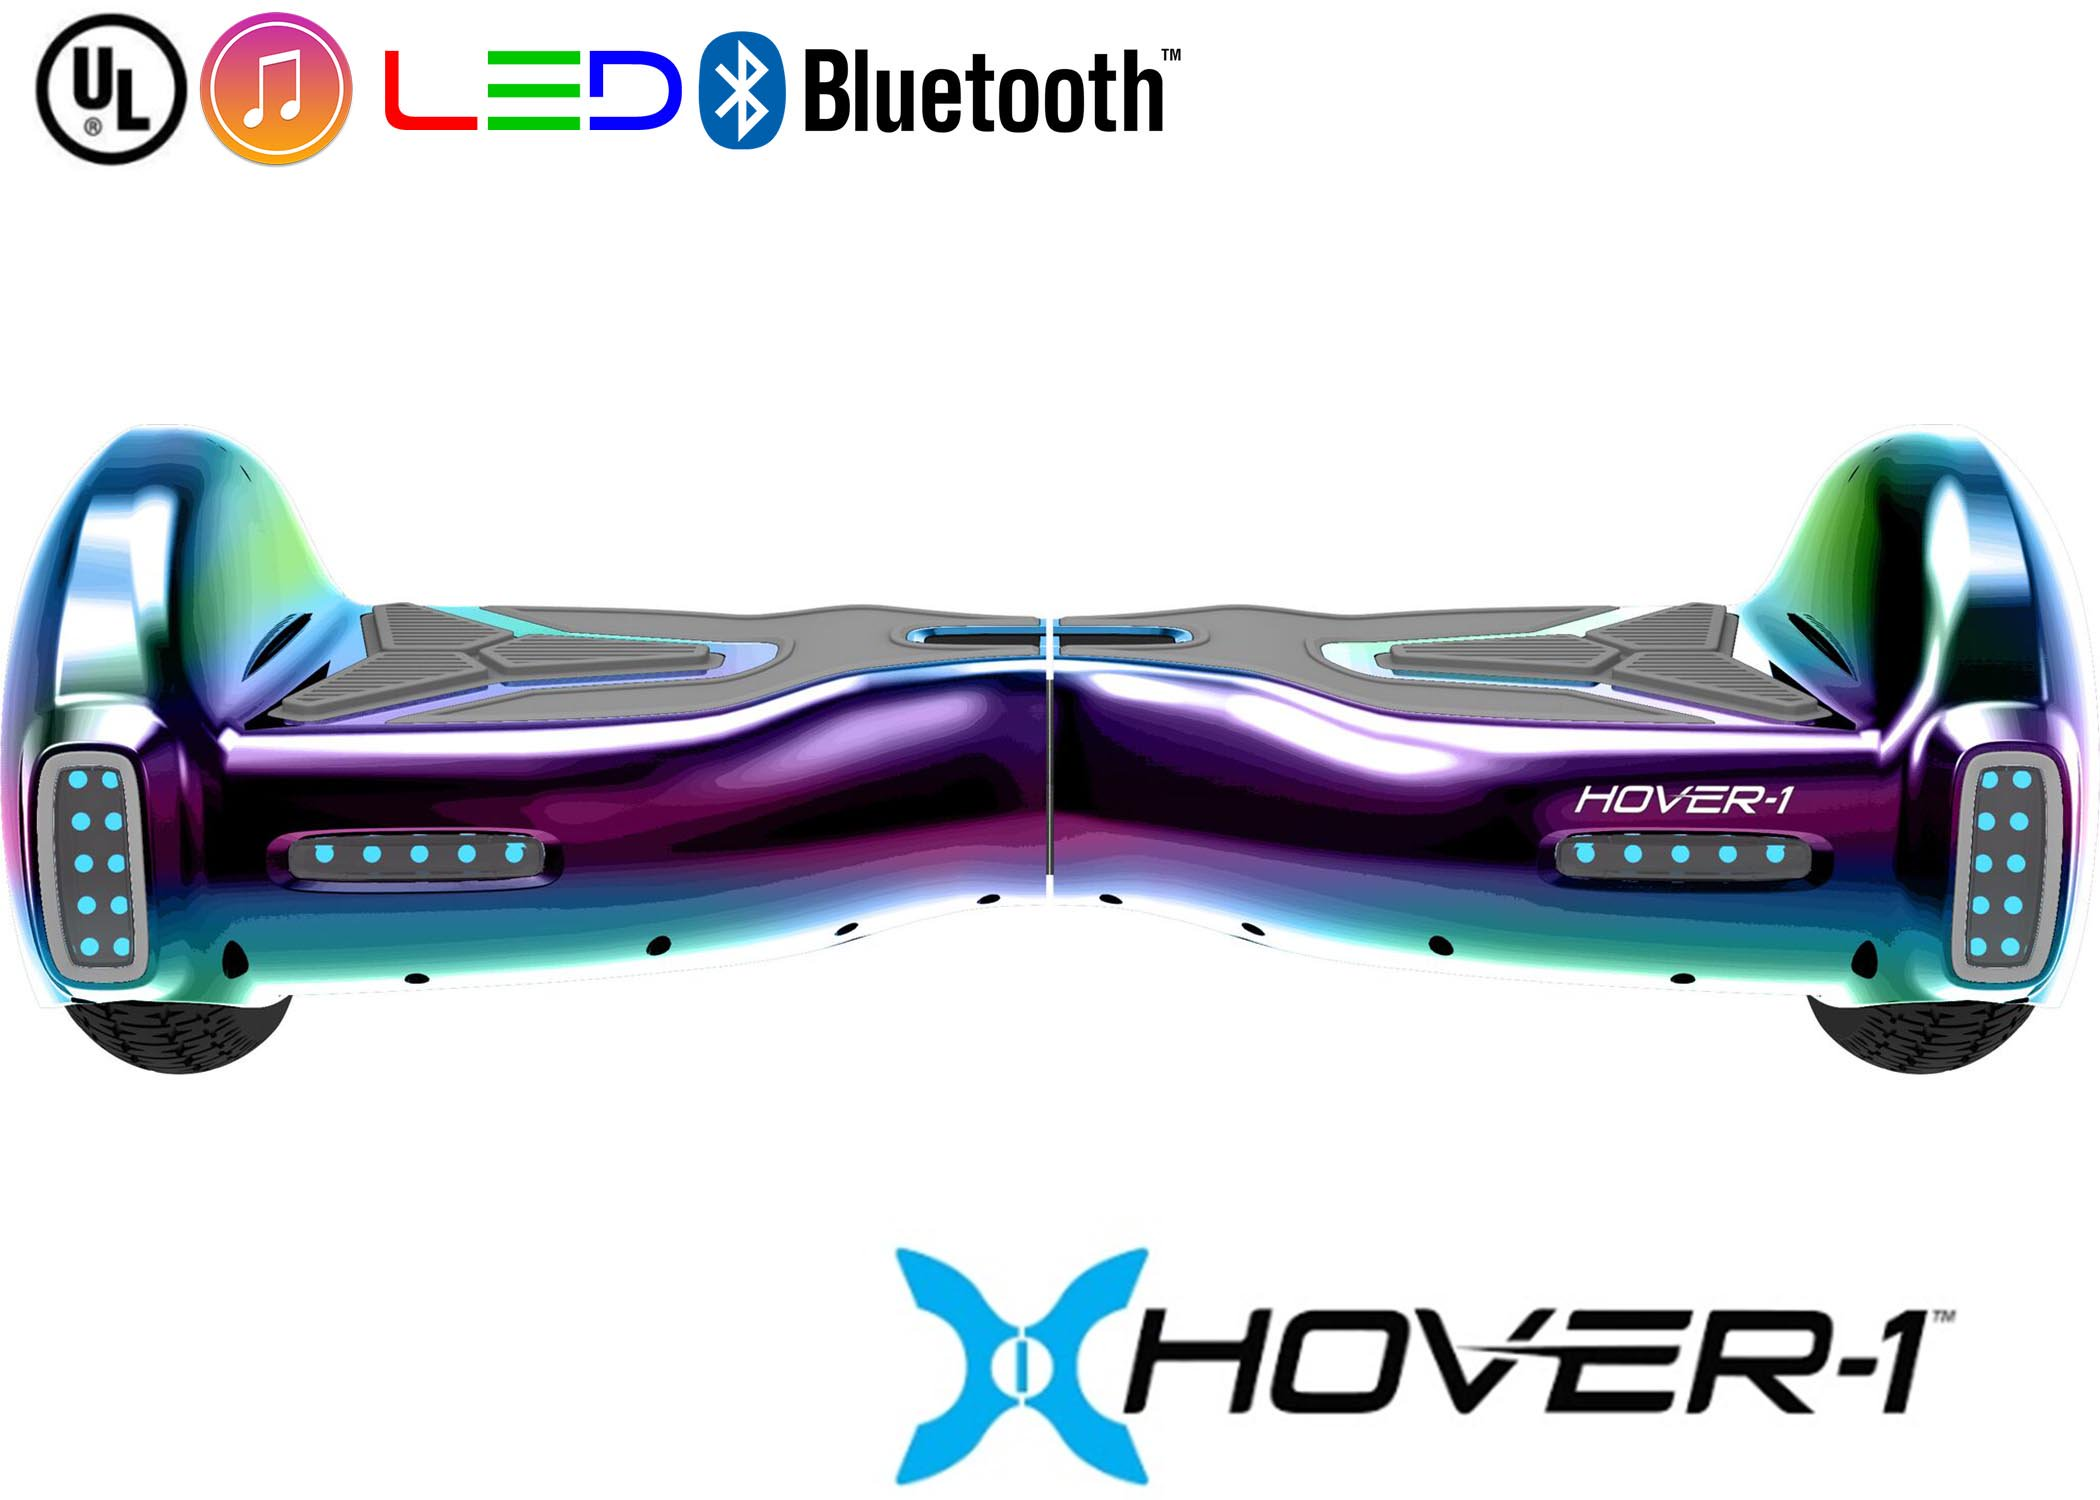 Hover-1 H1 UL Certified Electric Hoverboard w/ 6.5 Wheels, LED Lights, Bluetooth Speaker, and App Enabled - Iridescent